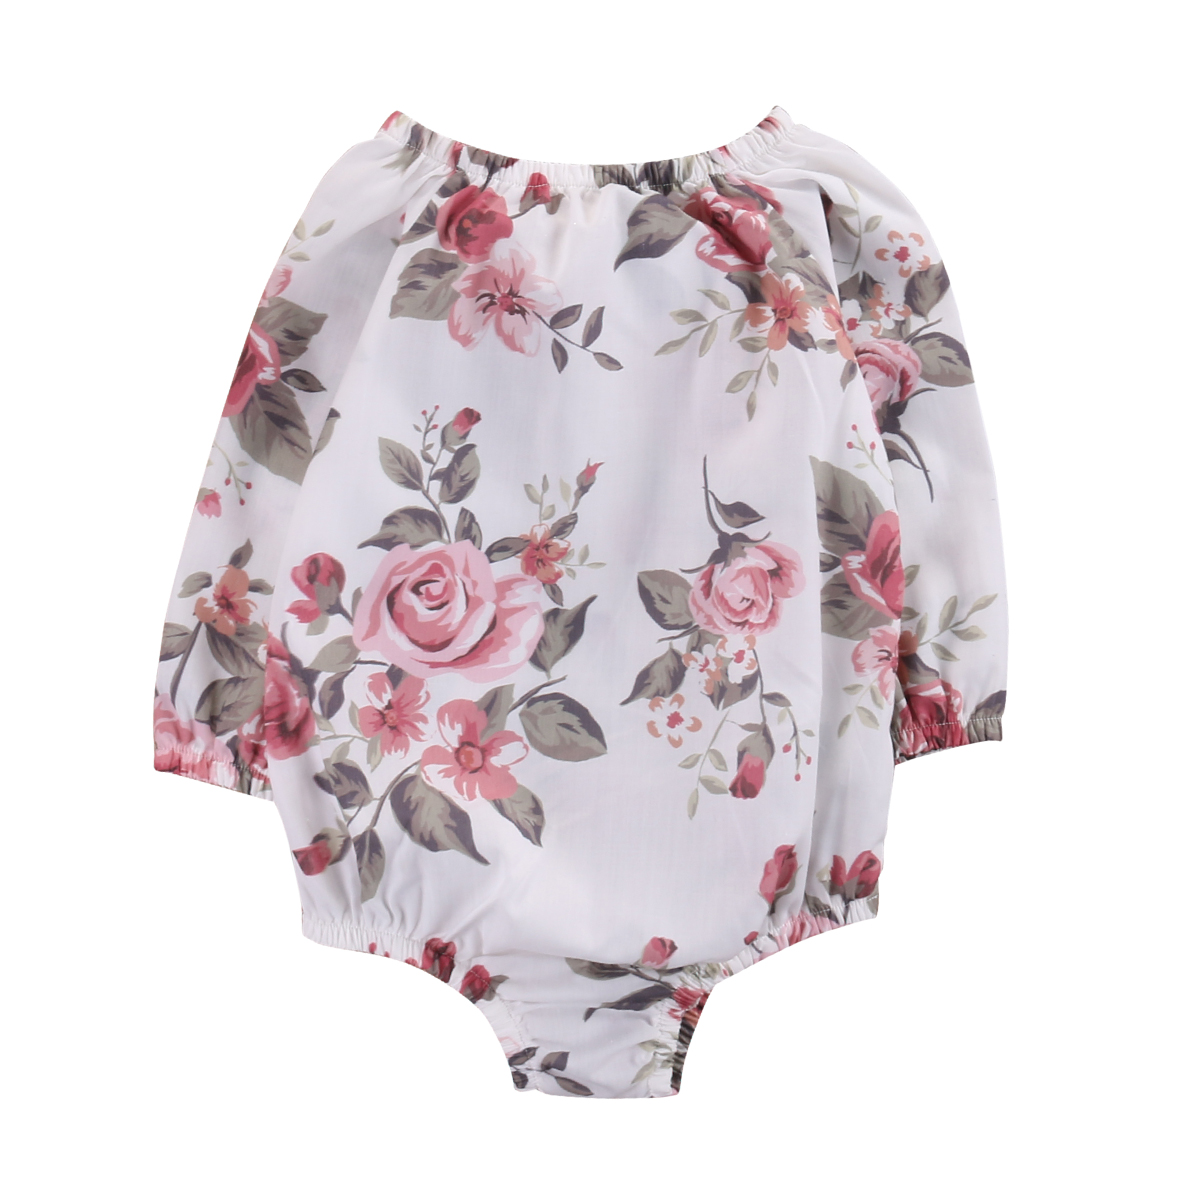 Hi Hi Baby Store Cute Summer Newborn Baby Girls Long Sleeves Folar Print Cotton  Bodysuit 0-18 M